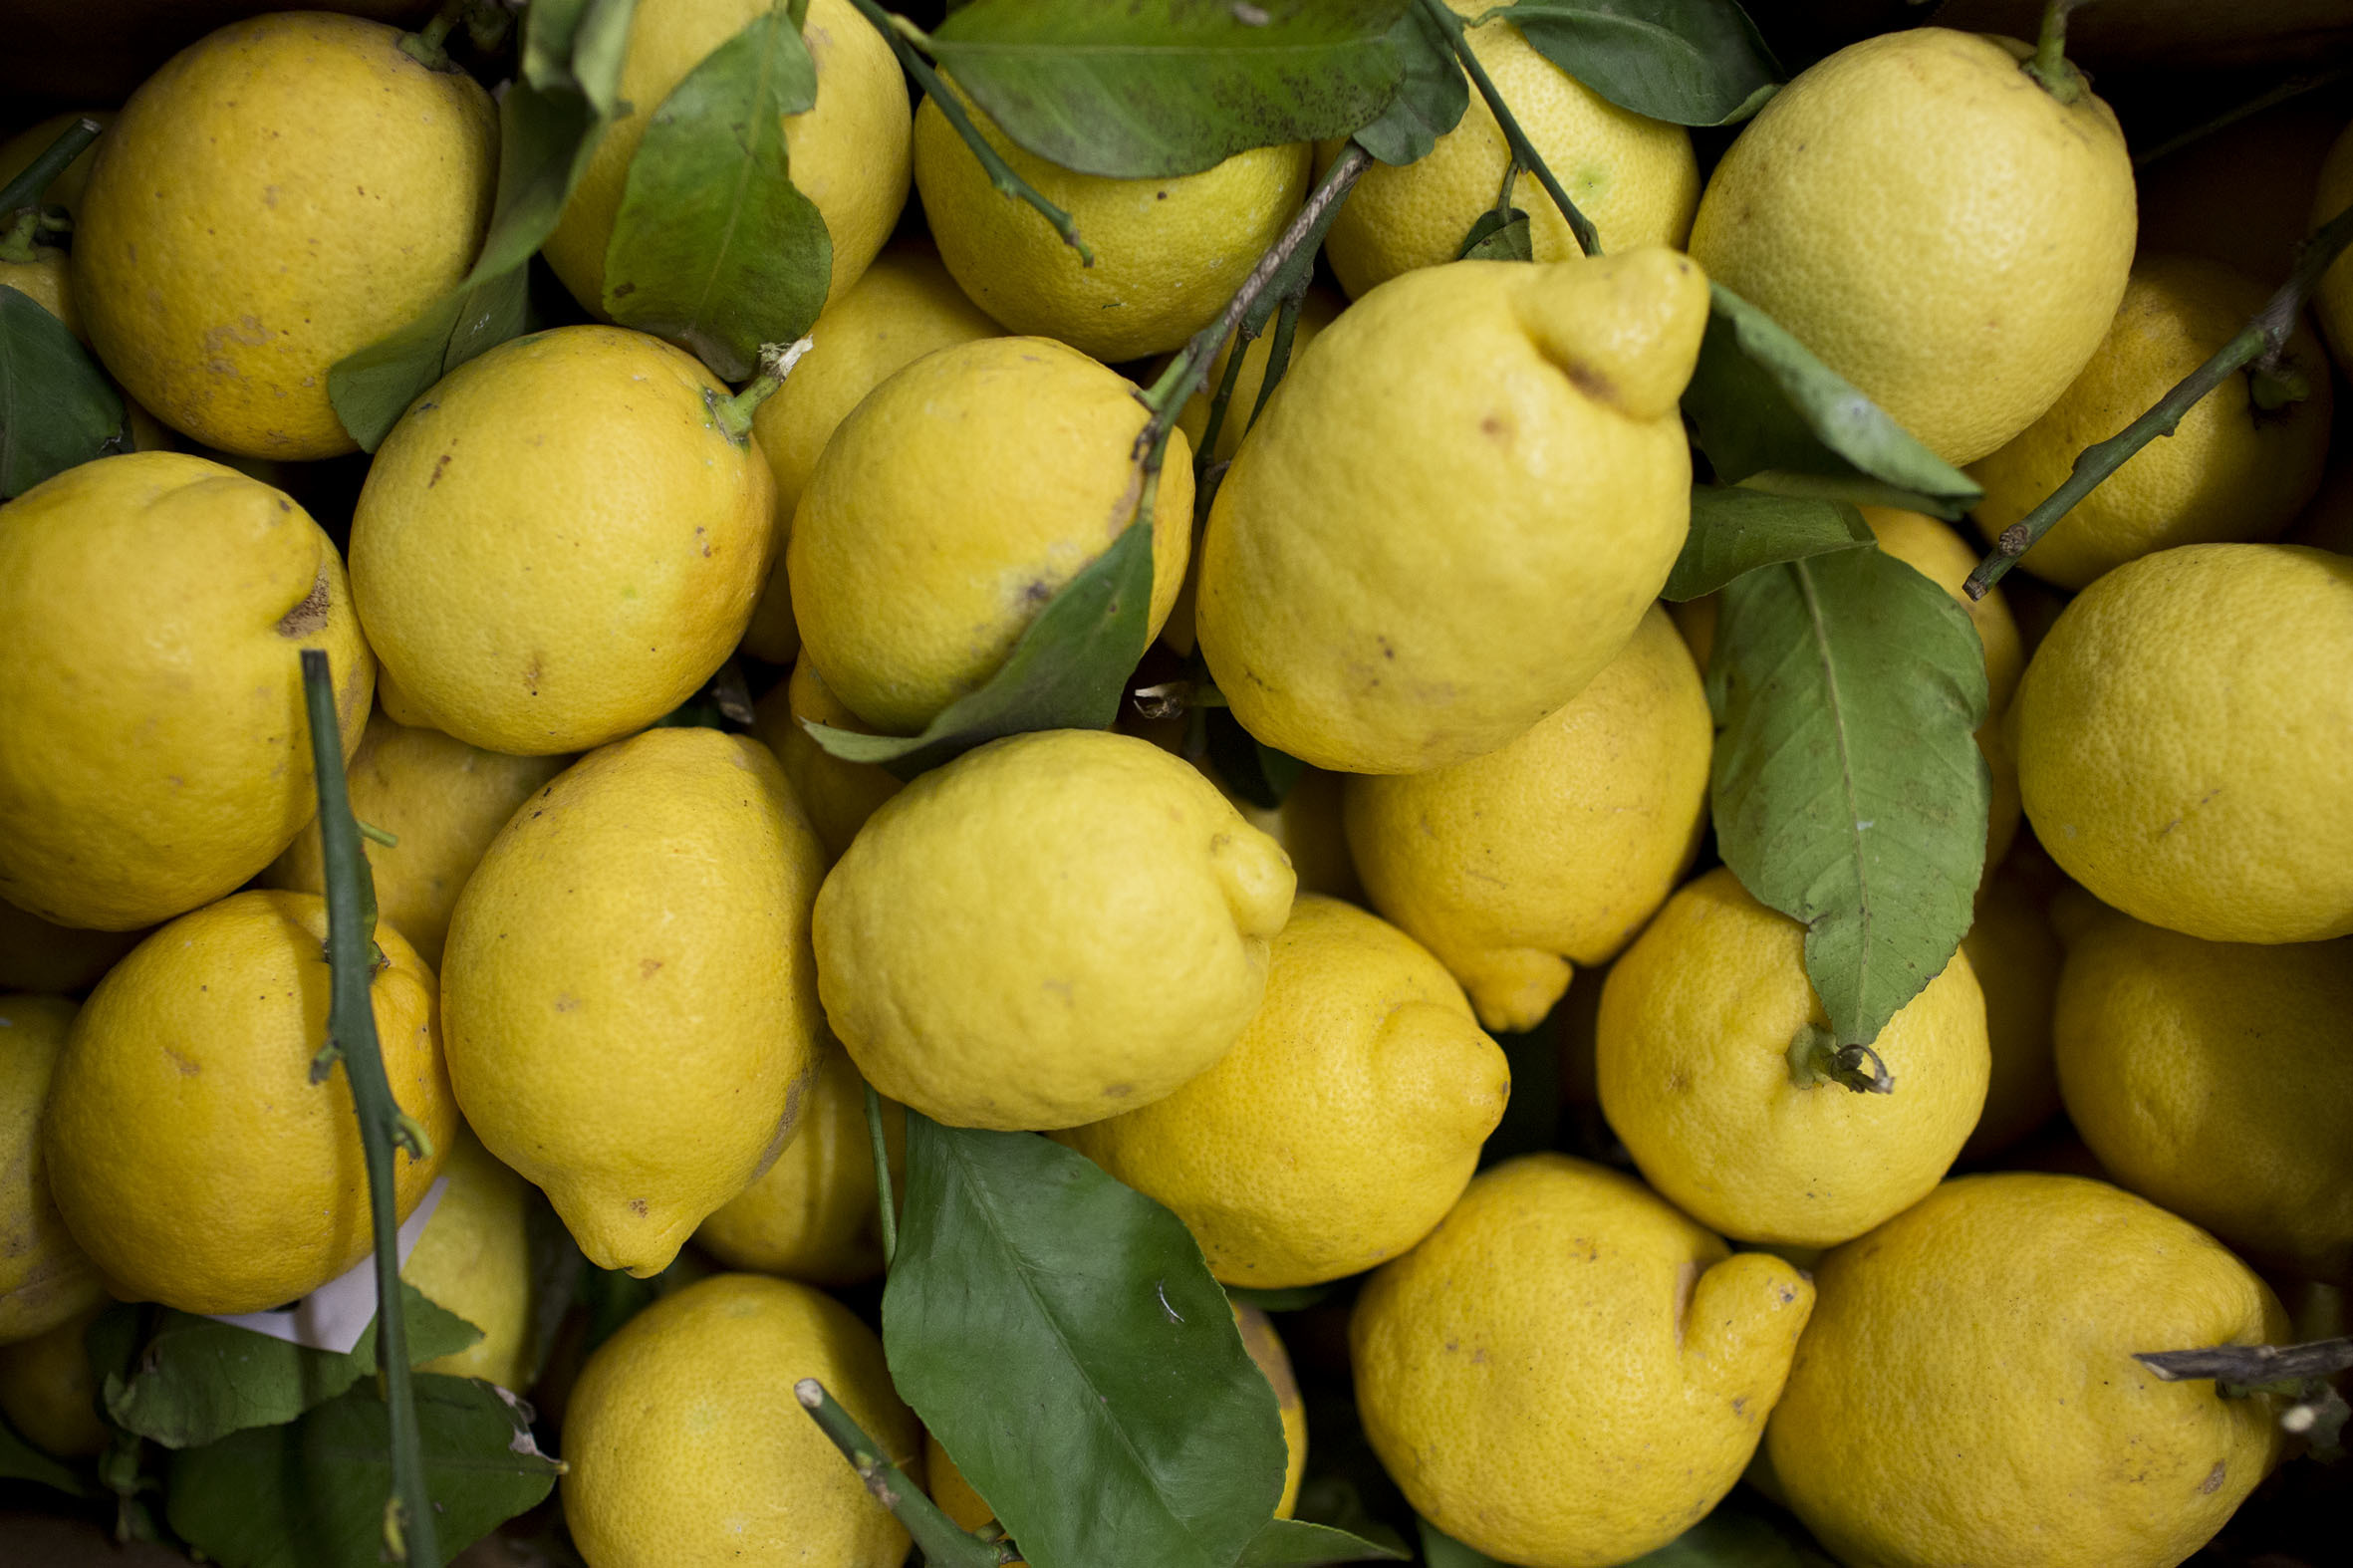 fruit-and-vegetable-market-report-march-2014-unwaxed-lemons.jpg?mtime=20170922112651#asset:11334